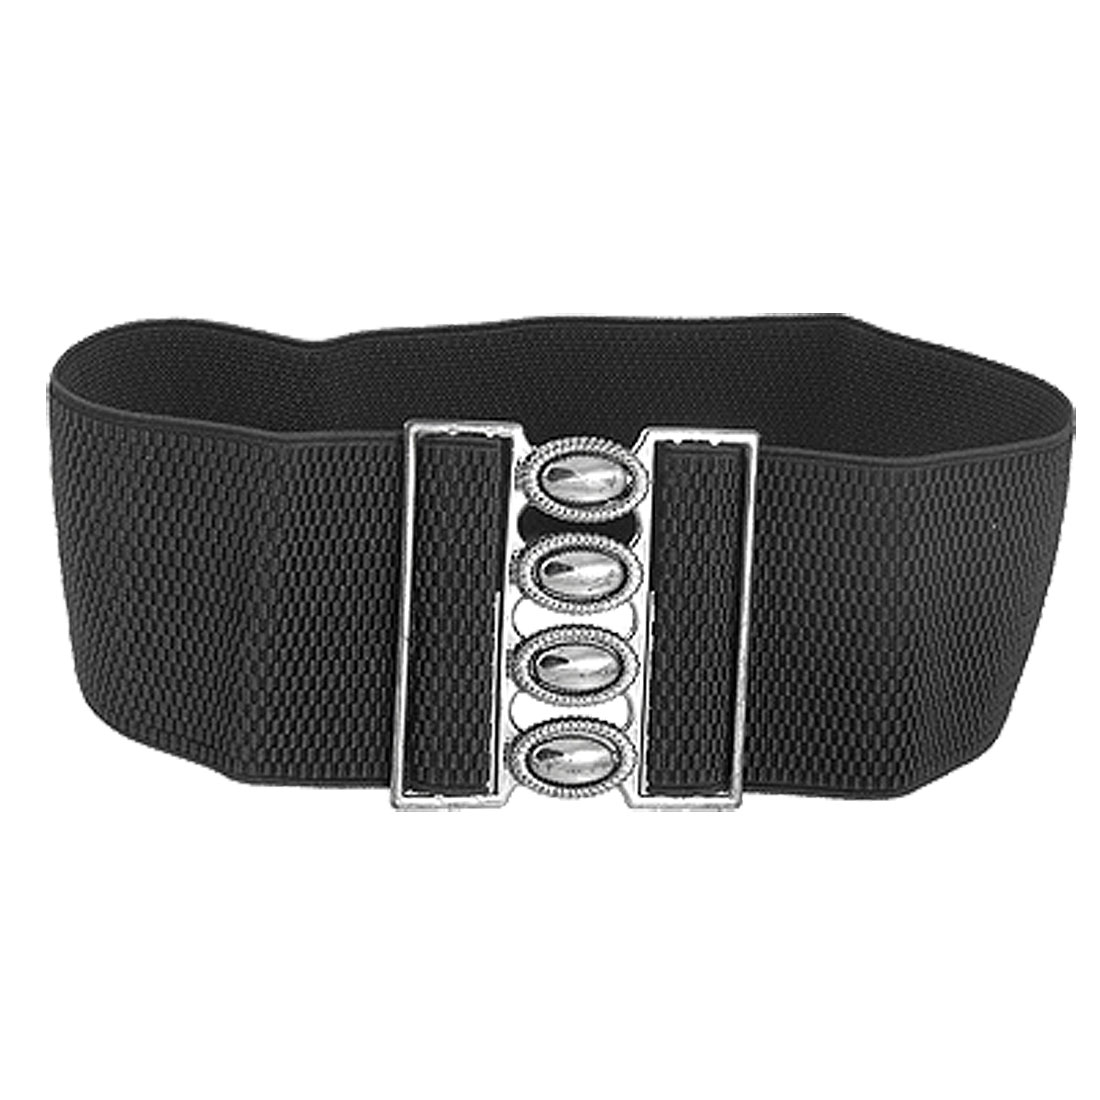 Women Oval Gem Shape Interlocking Buckle Elastic Waist Belt Black